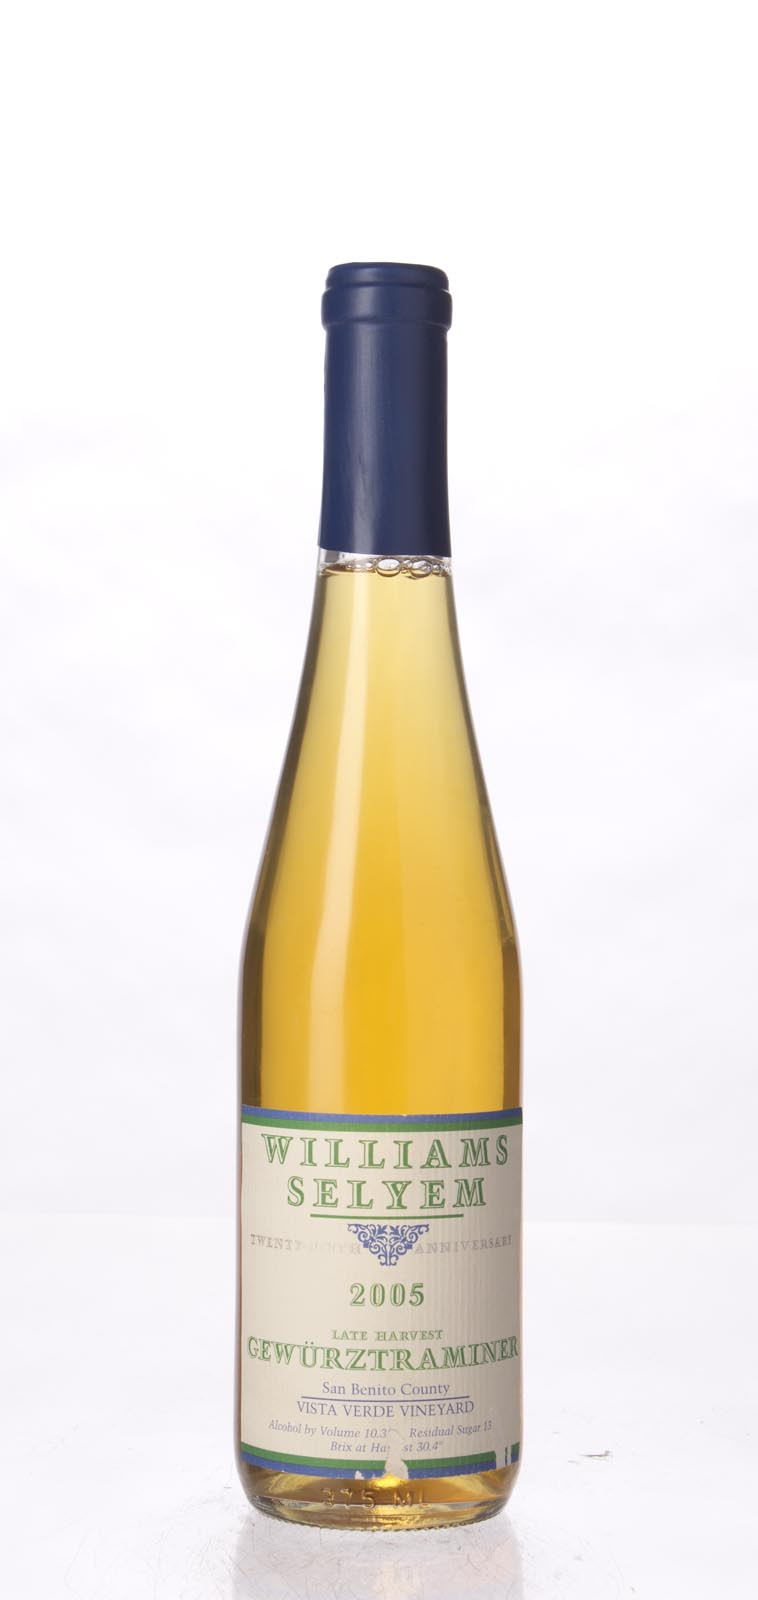 Williams Selyem Gewurztraminer Vista Verde Vineyard Late Harvest 2005, 375ml () from The BPW - Merchants of rare and fine wines.